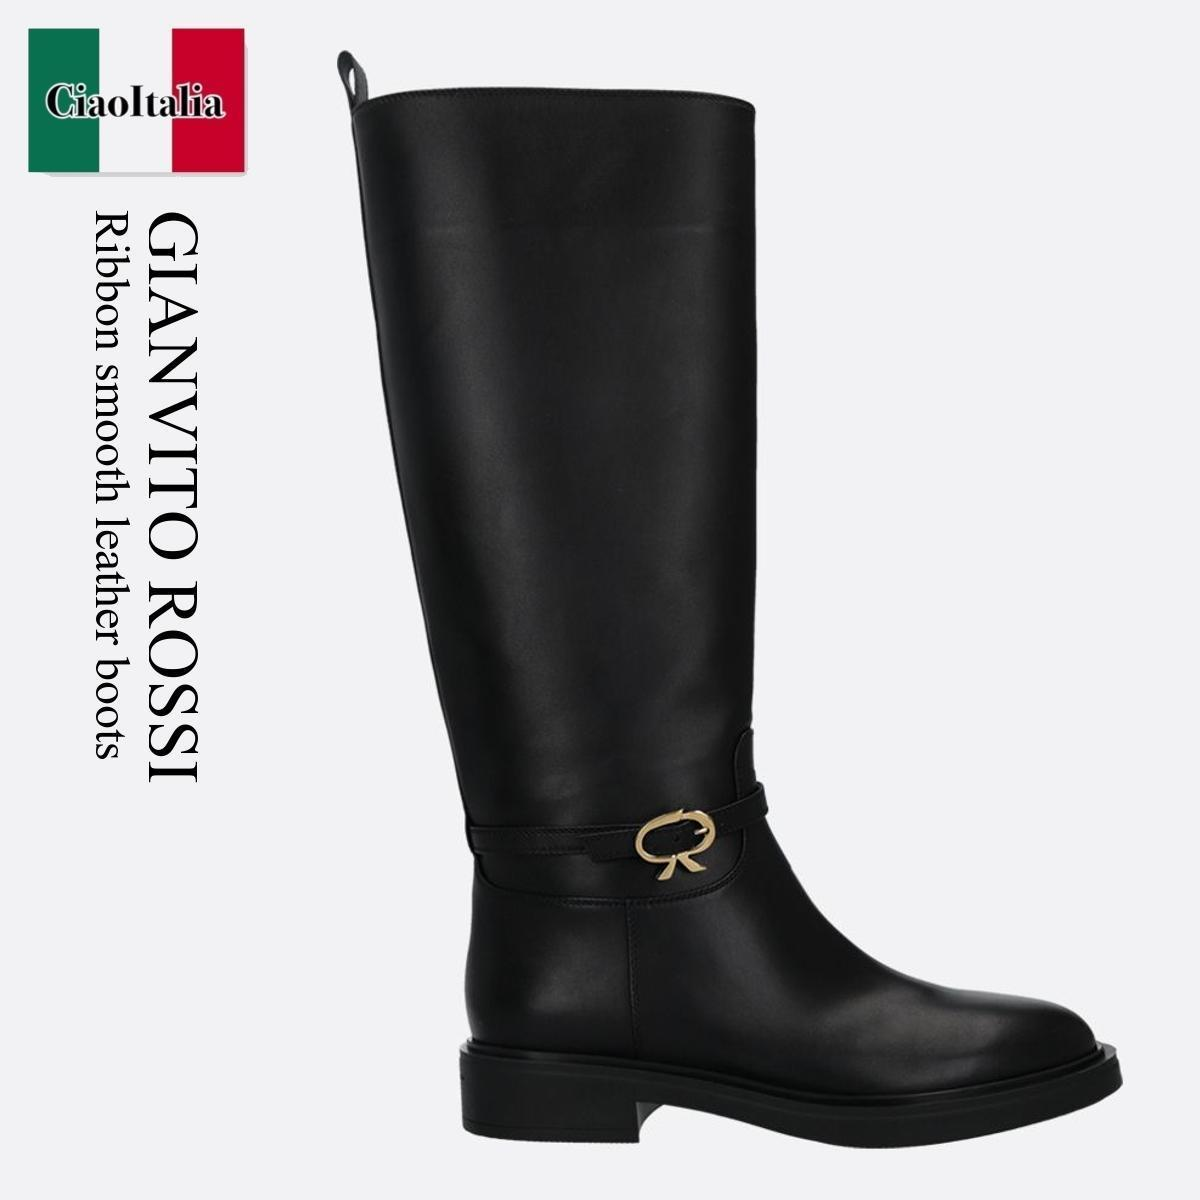 Gianvito Rossi Ribbon smooth leather boots (Gianvito Rossi/ロングブーツ) RIBBON SMOOTH LEATHER BOOTS  G80345 20GOM VIPN  G80345 20GOM VIPN ERO